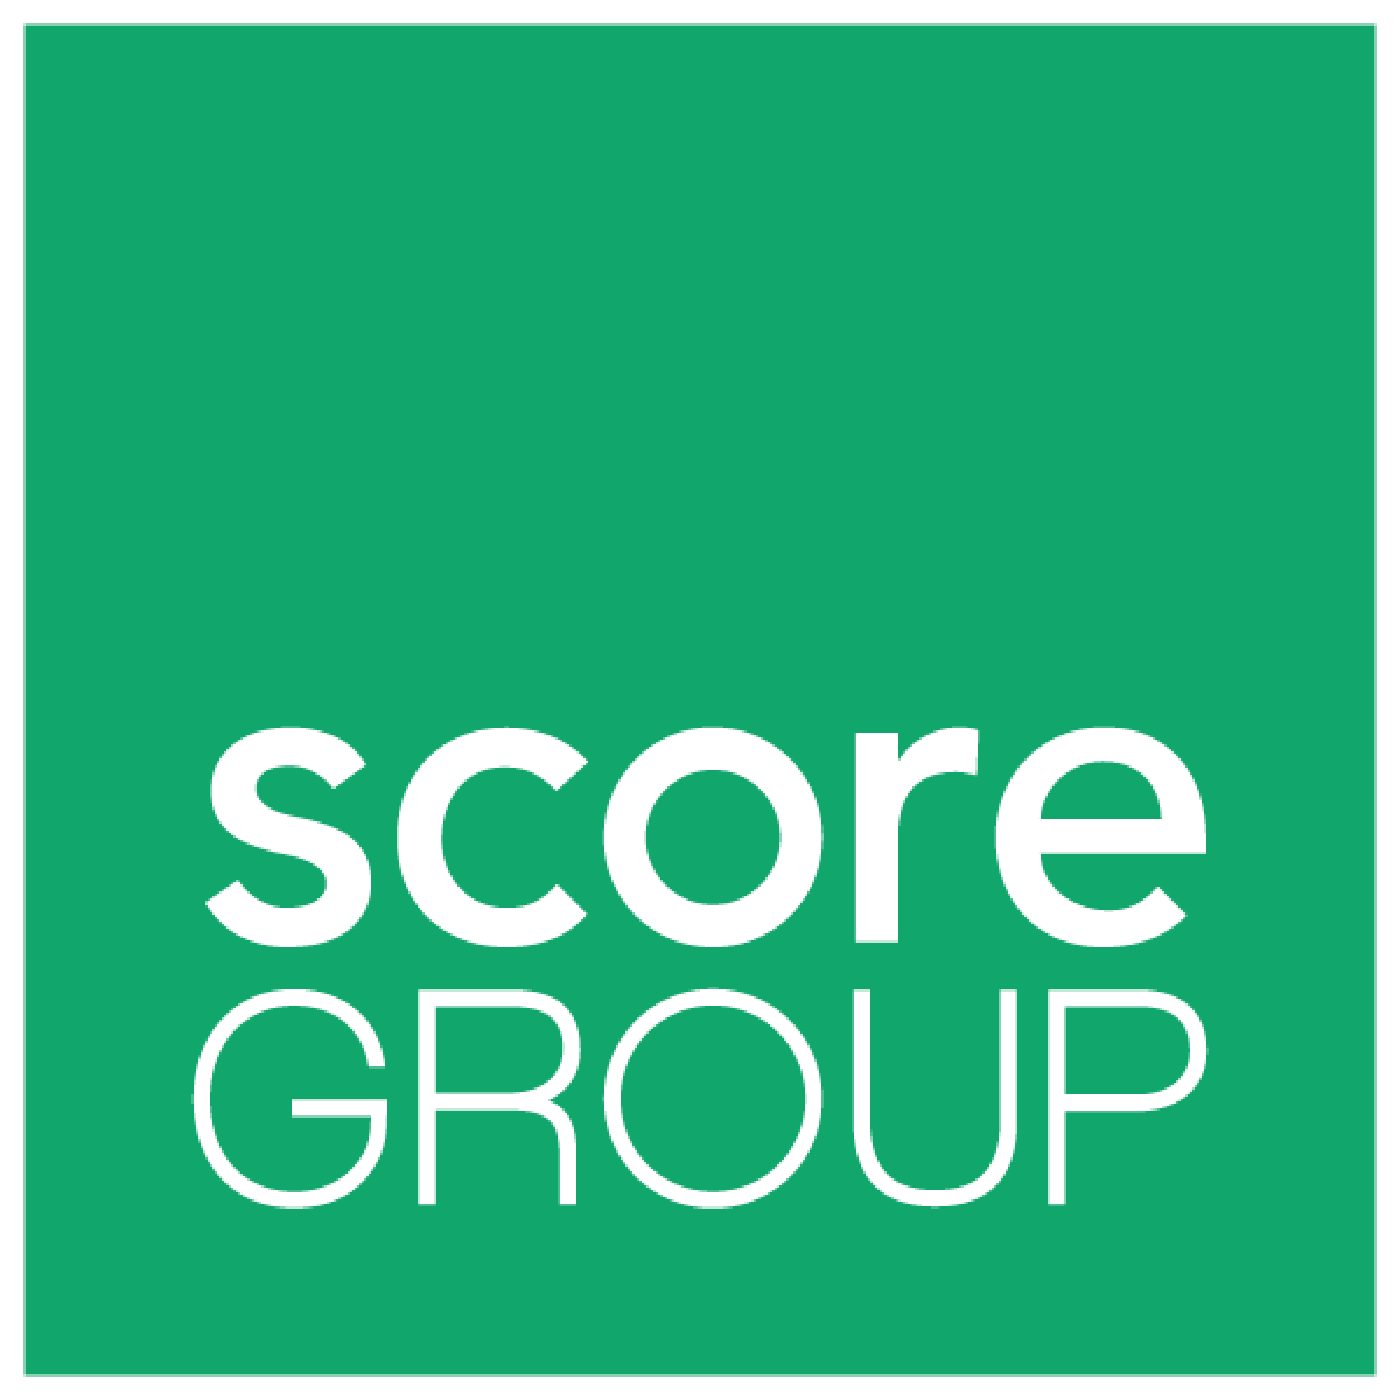 scoregroup-q-v-t-1400x1400